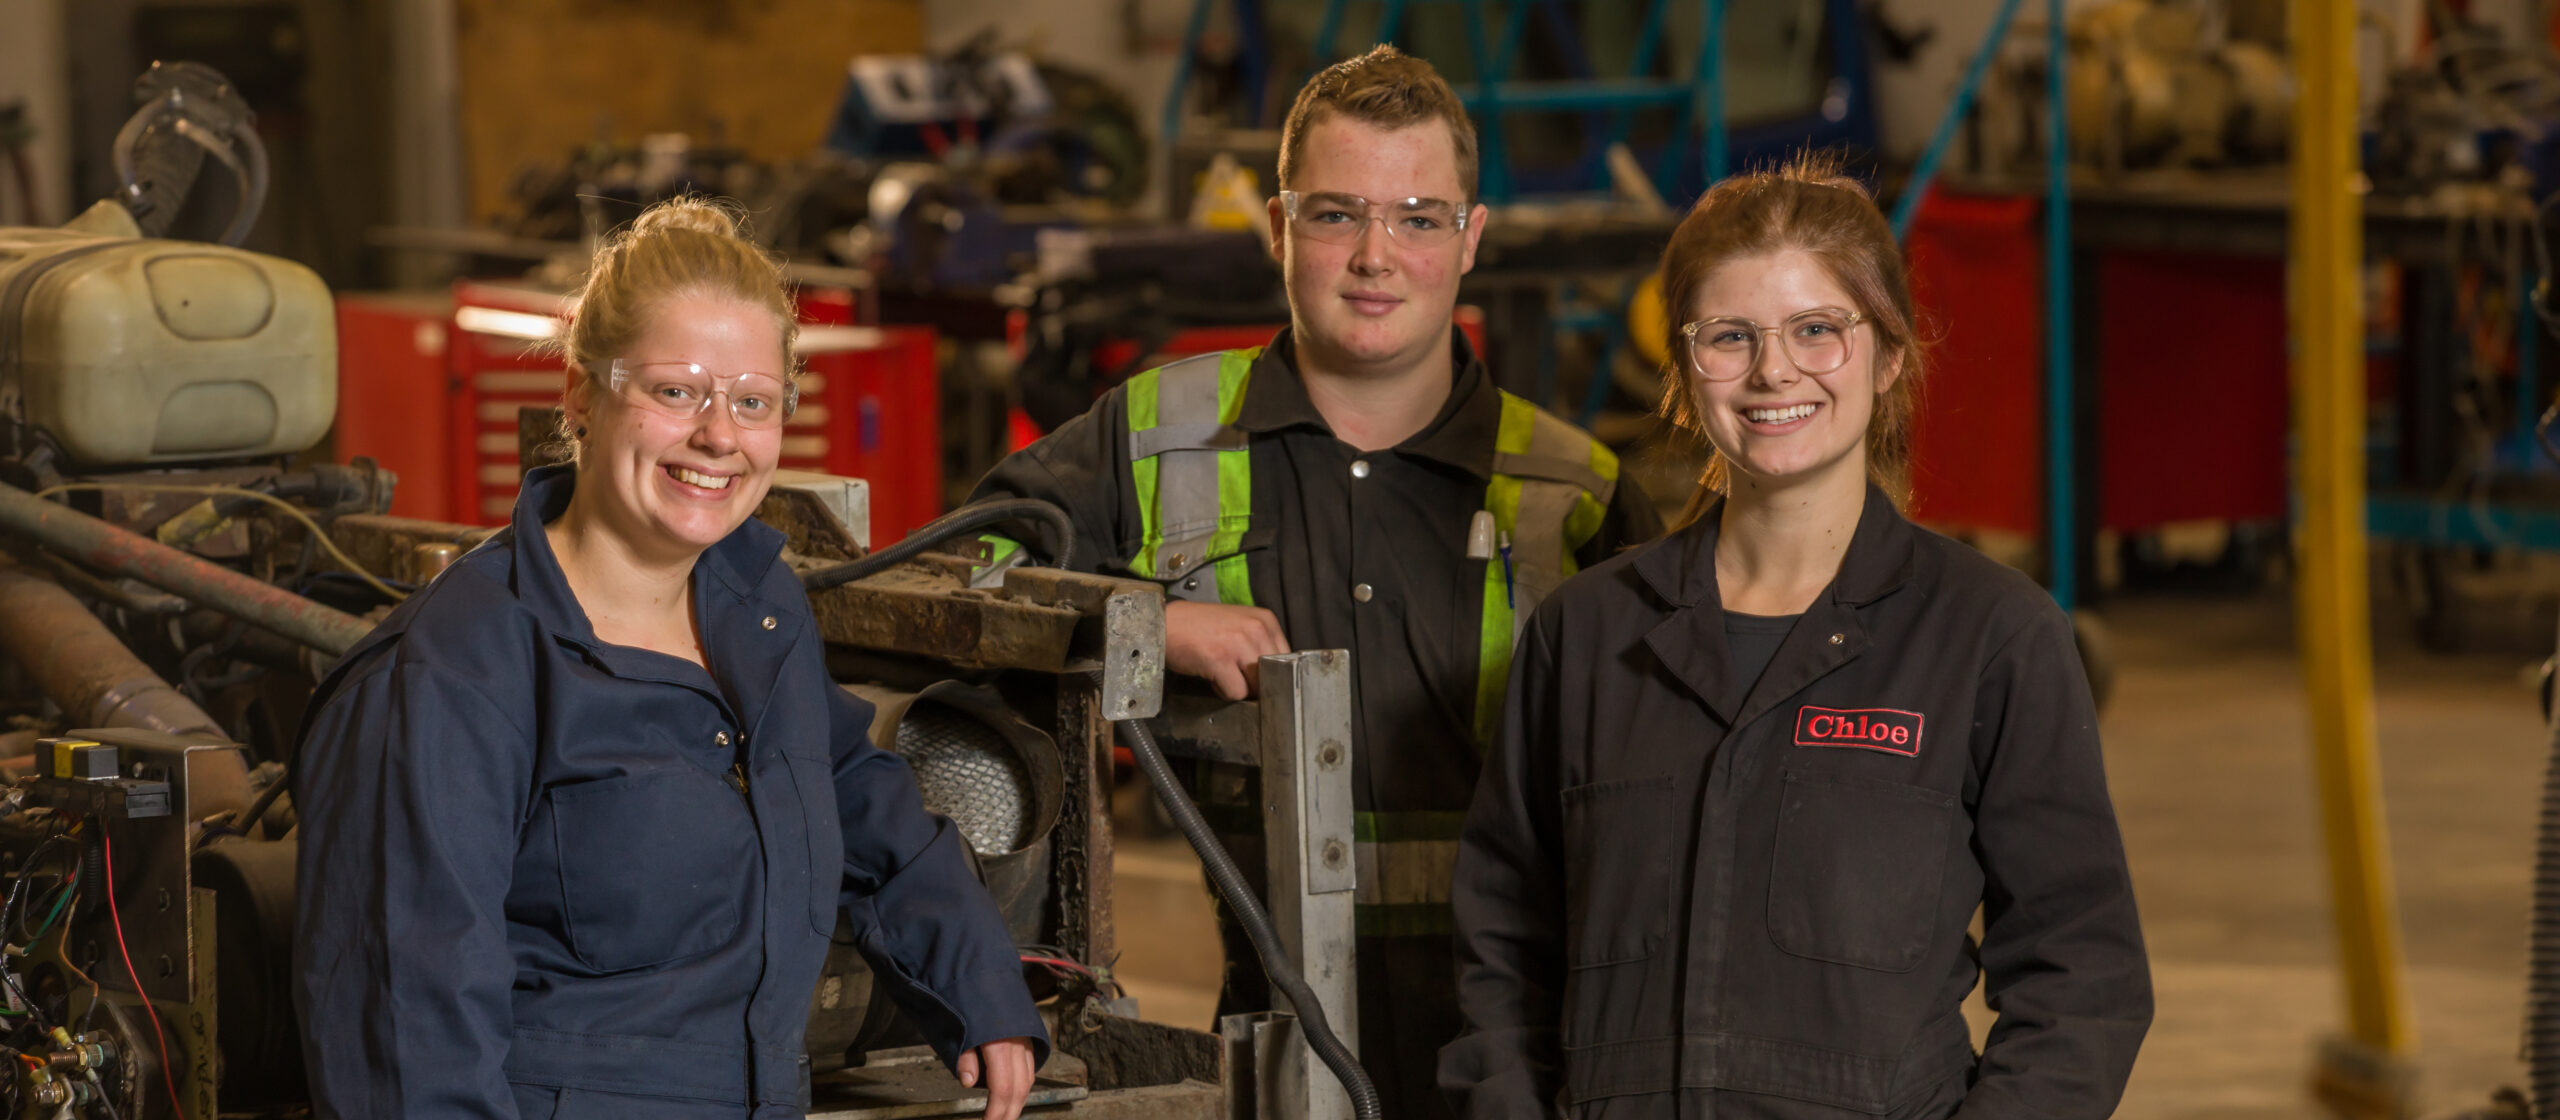 Three smiling people in a workshop